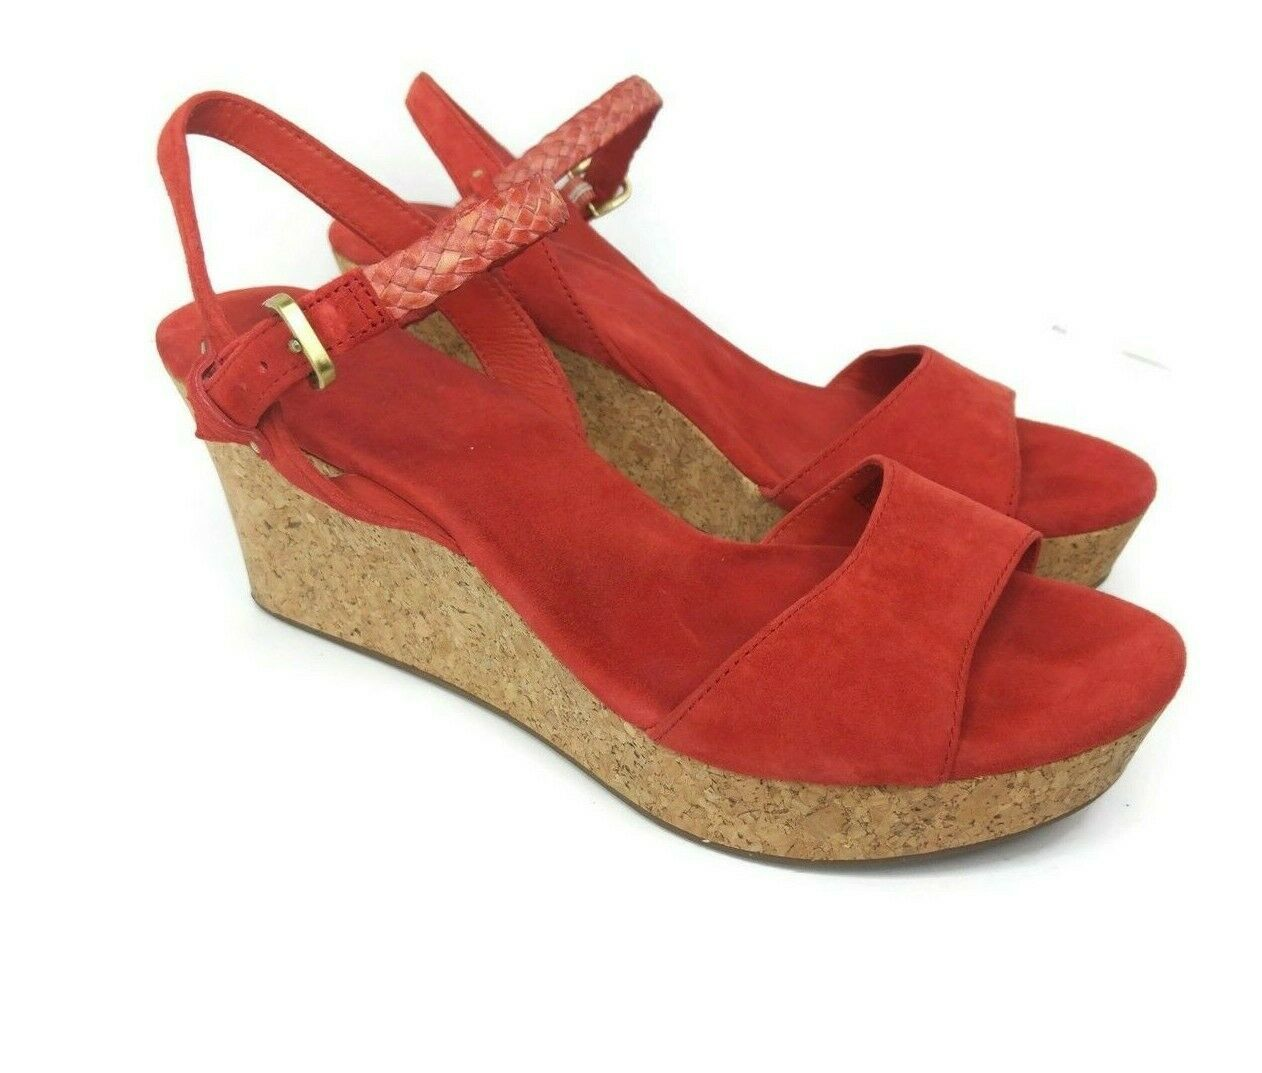 Primary image for UGG D'Alessio Womens Size 11 Orange Leather Braid Wedge Cork Sandal Suede